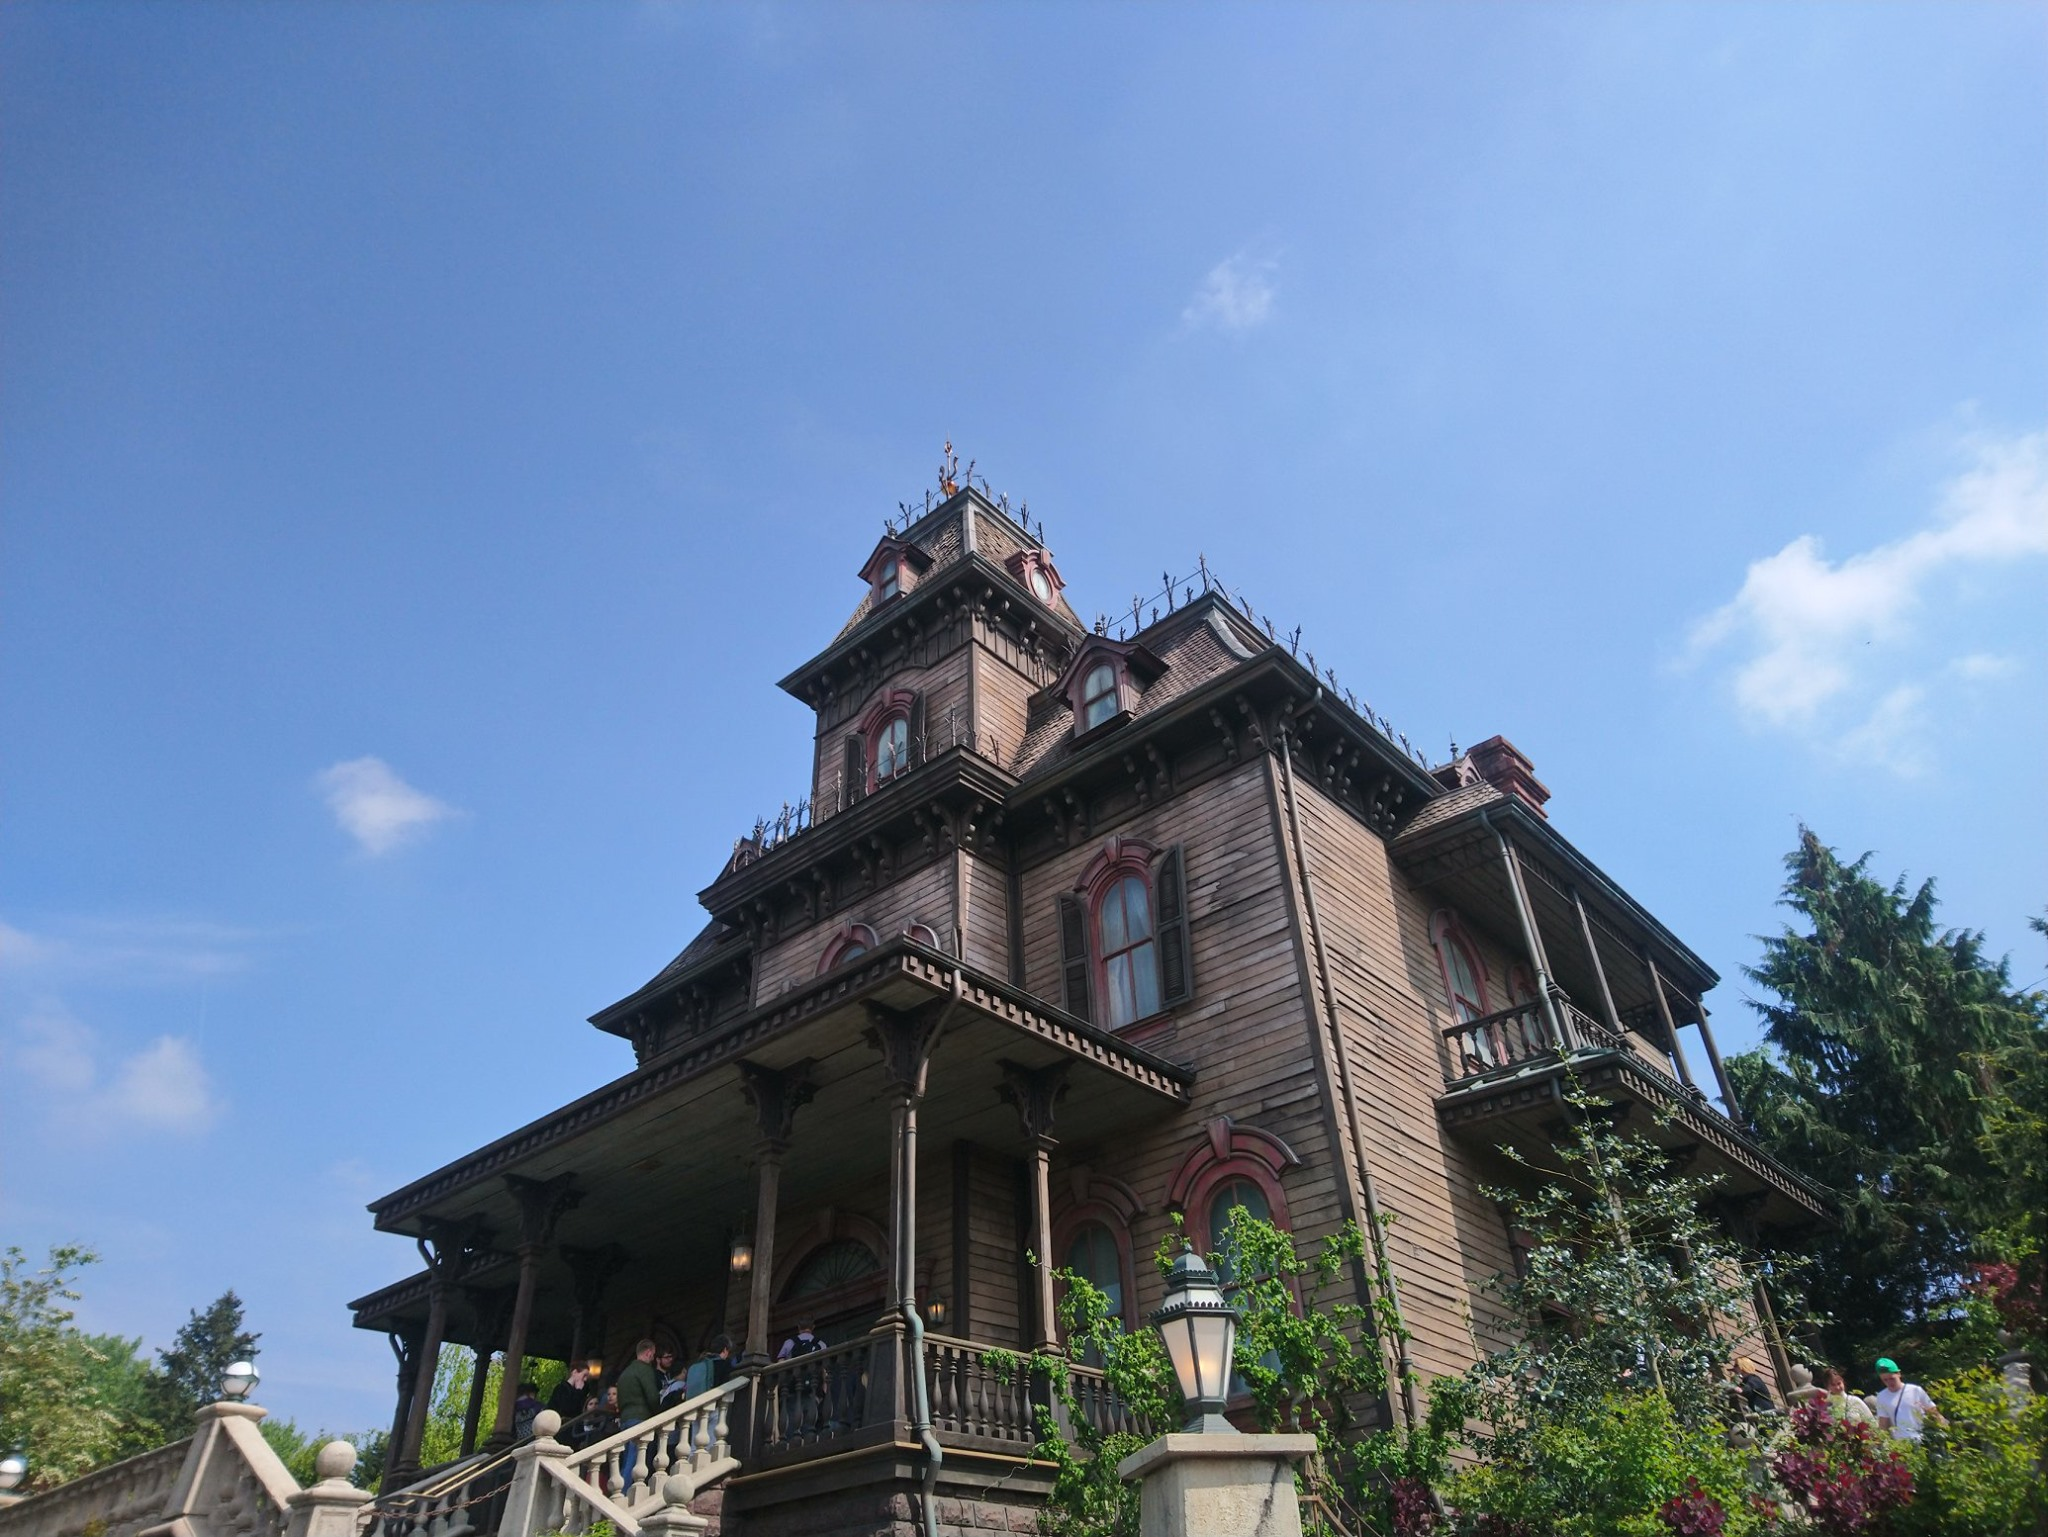 Phantom Manor - Mai 2019 après rénovation - Disneyland Paris